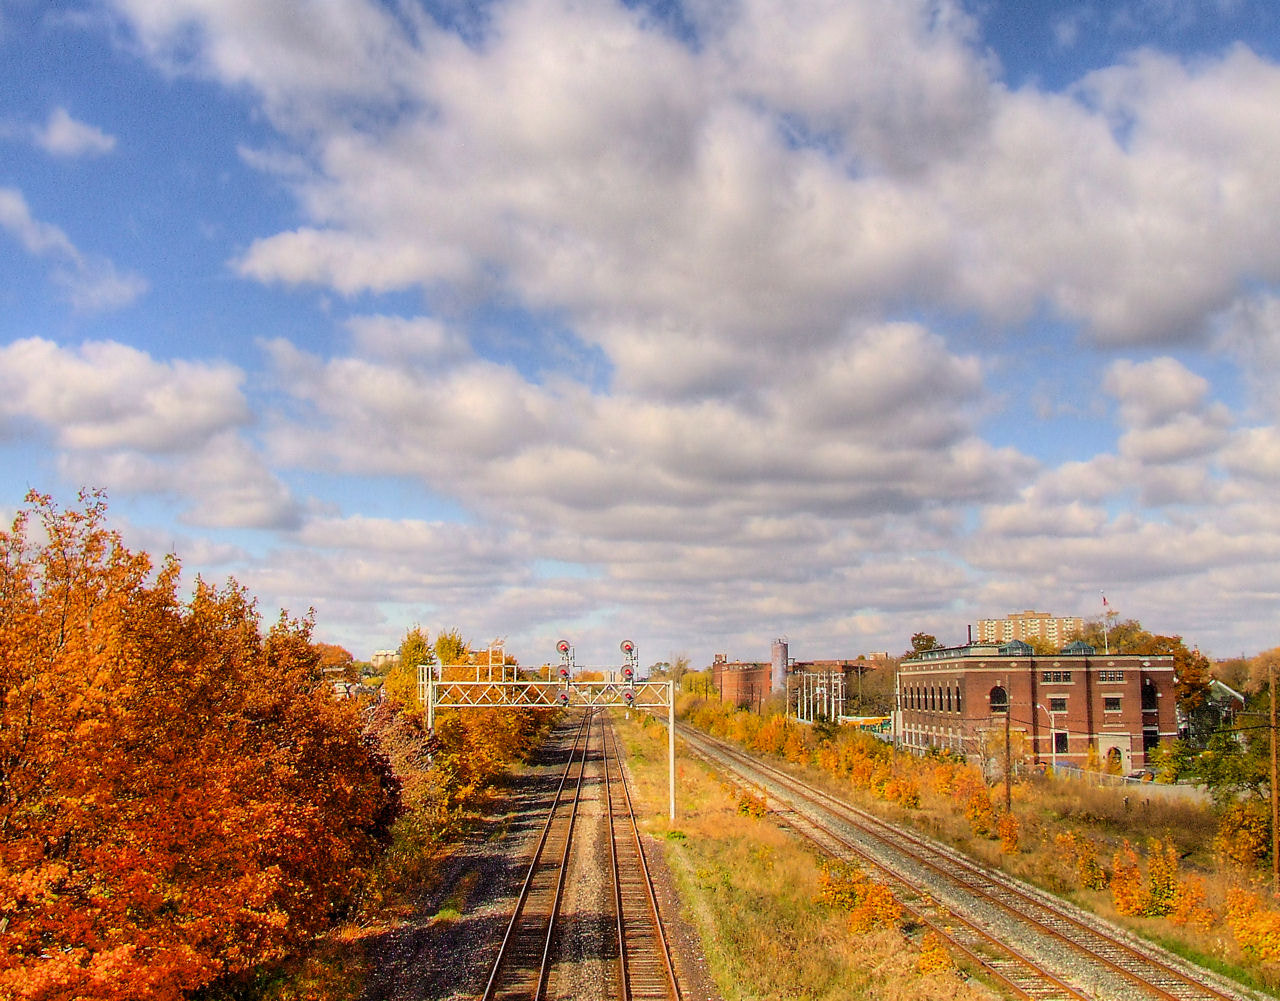 Photograph Autumn Tracks by Grant MacDonald on 500px